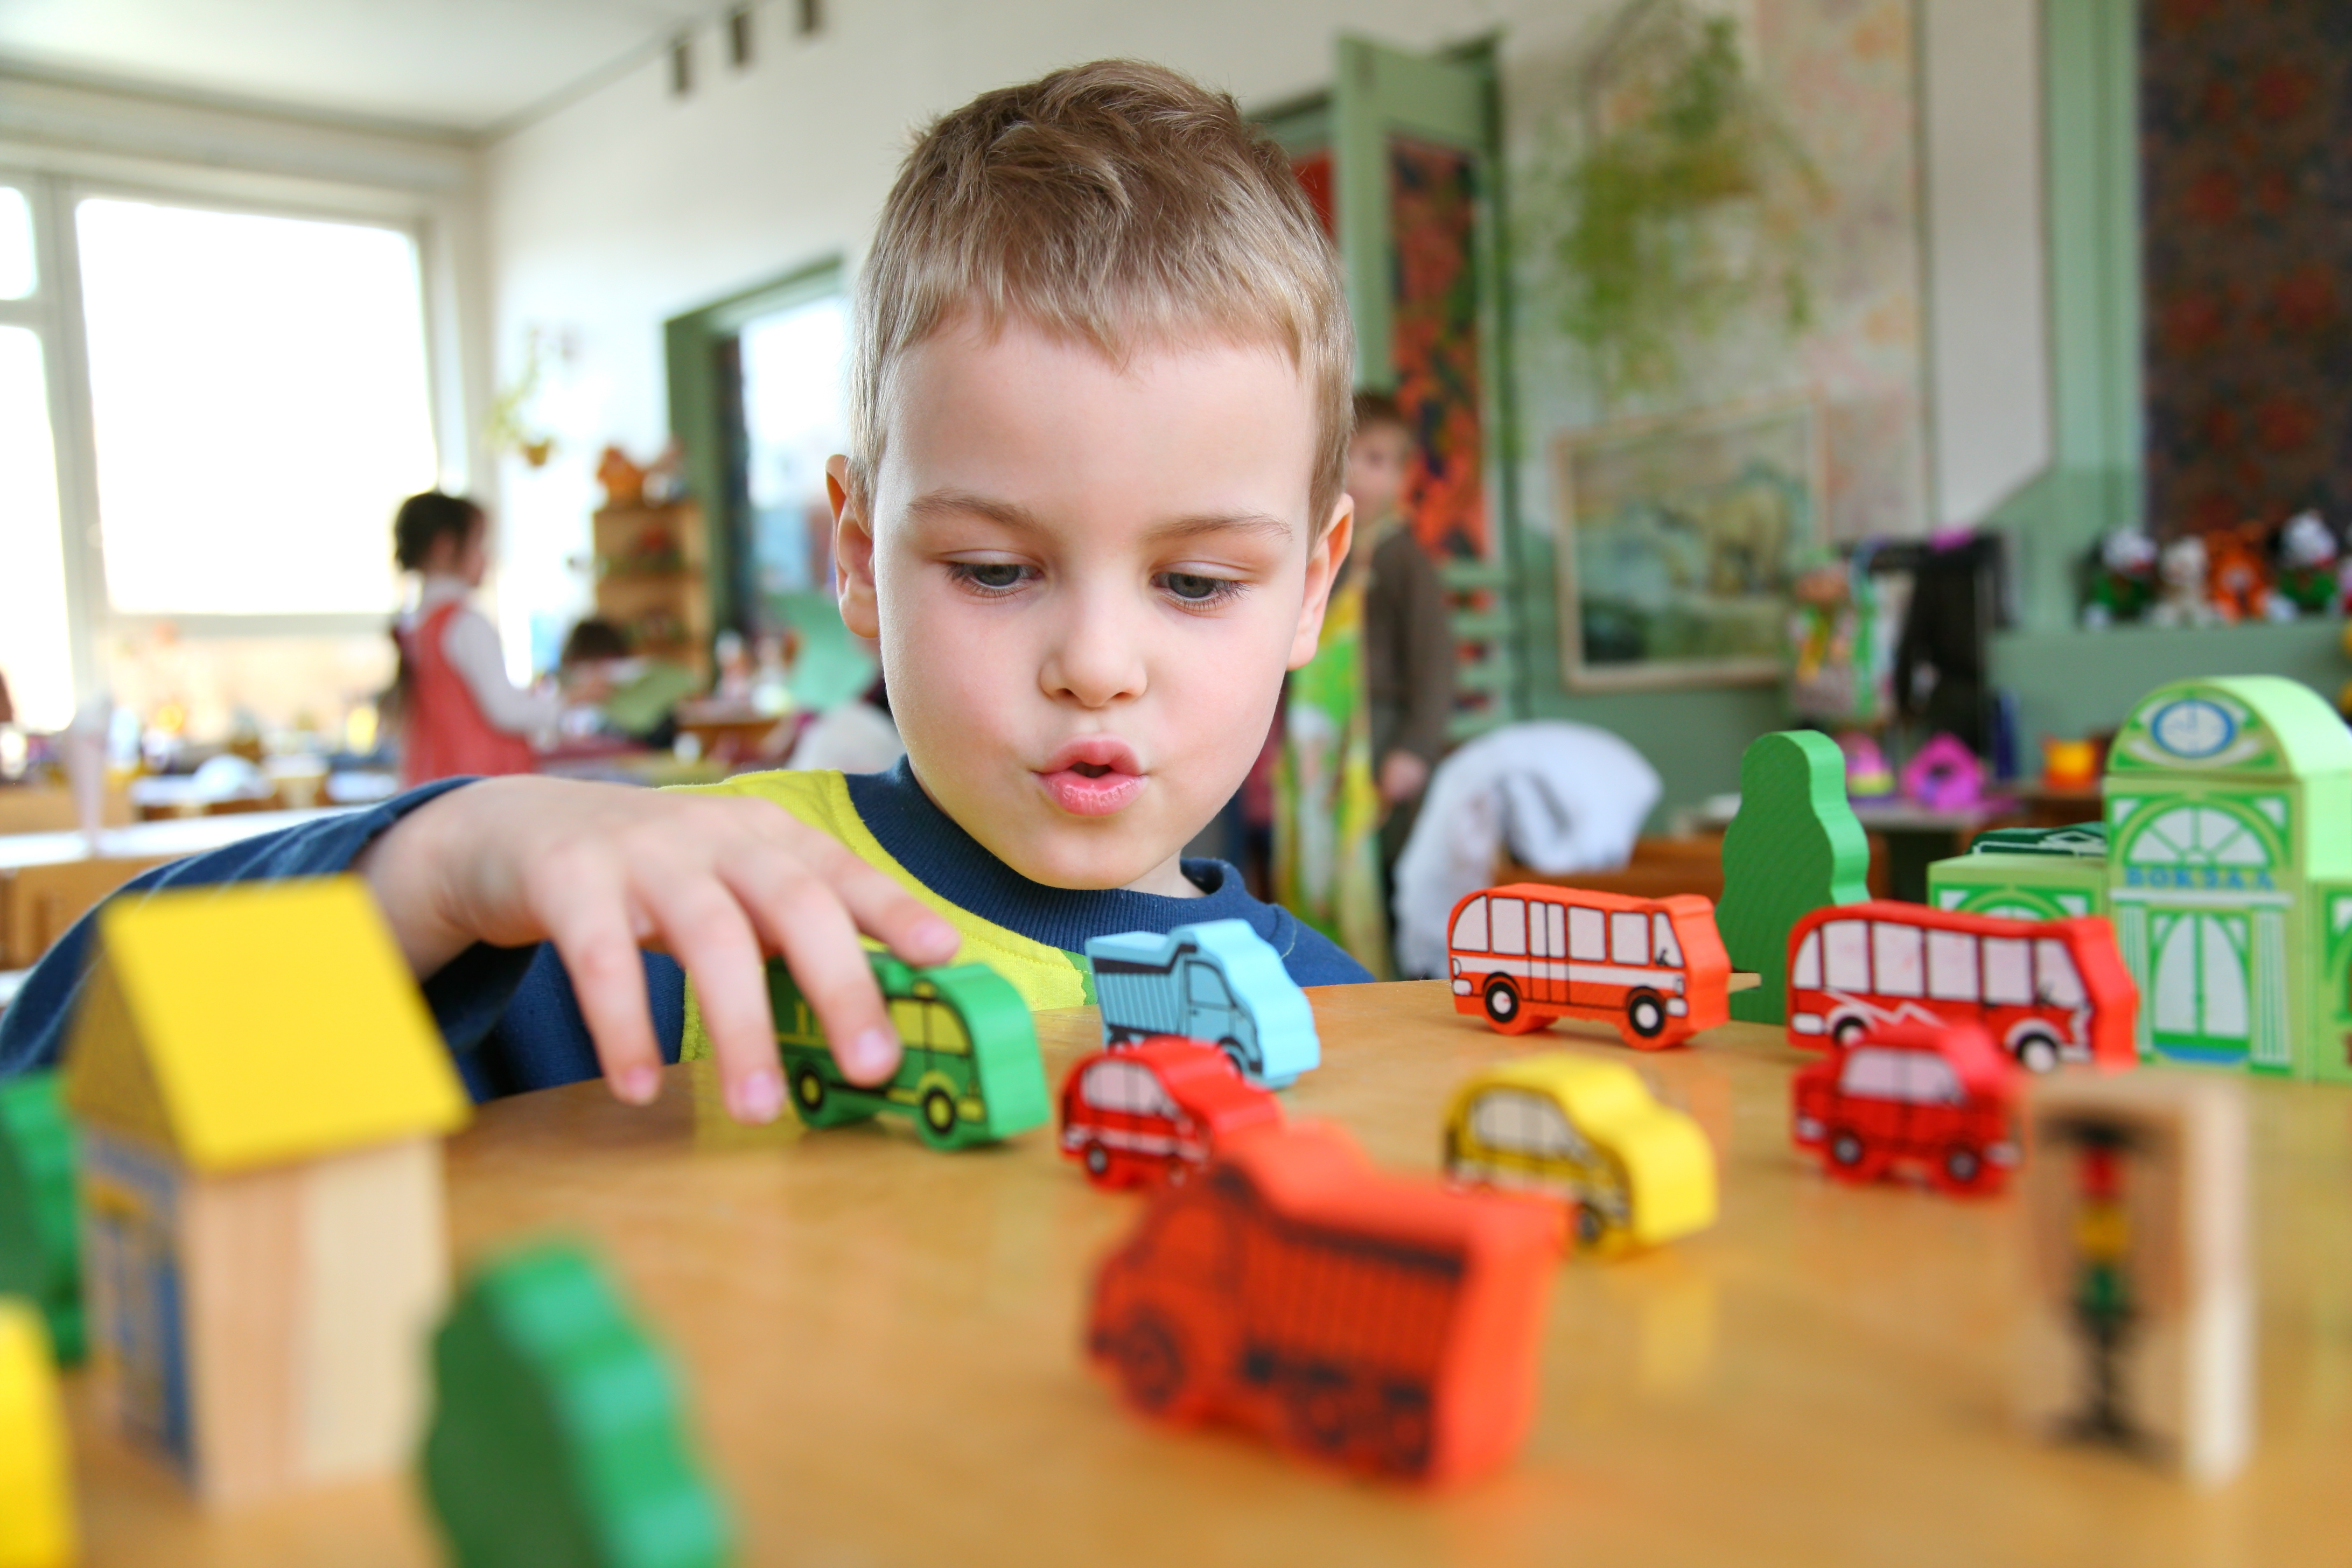 an analysis of kindergarten children who are fully prepared to participate in their very first schoo Children with disabilities should be viewed as just like other children and helped to participate as fully as possible in all areas of the preschool curriculum.